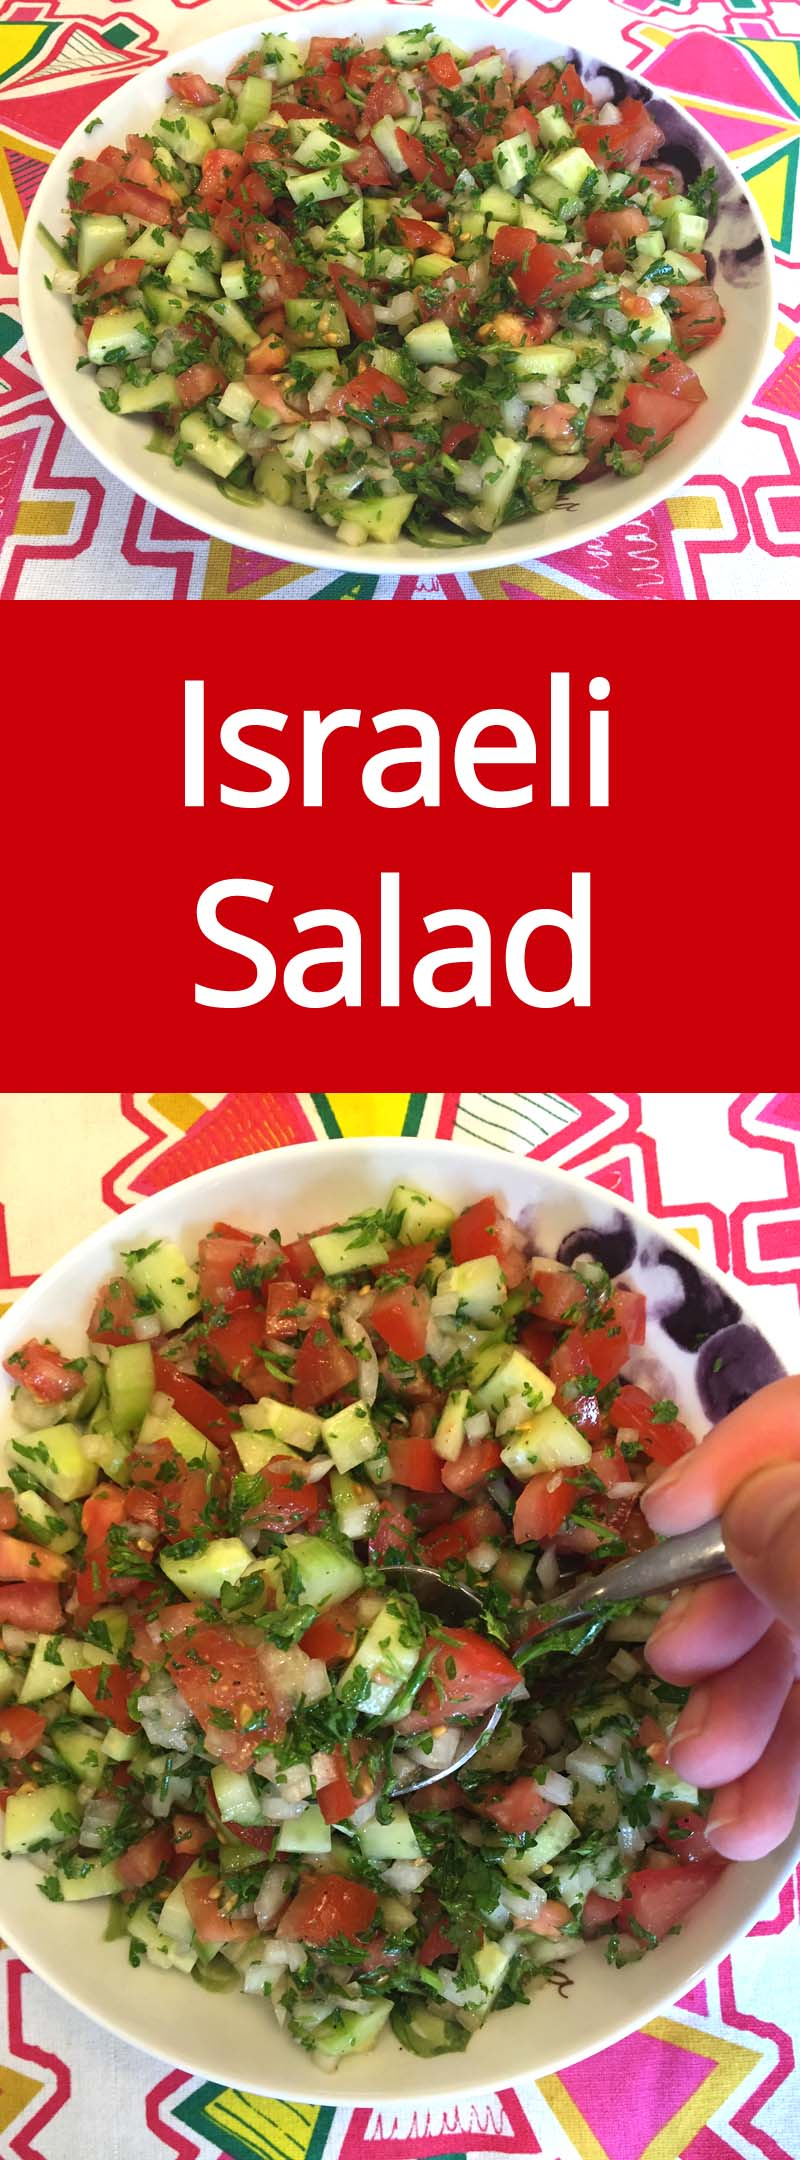 Israeli Salad Recipe With Tomatoes Cuber Onions And Parsley Crunchy Healthy And